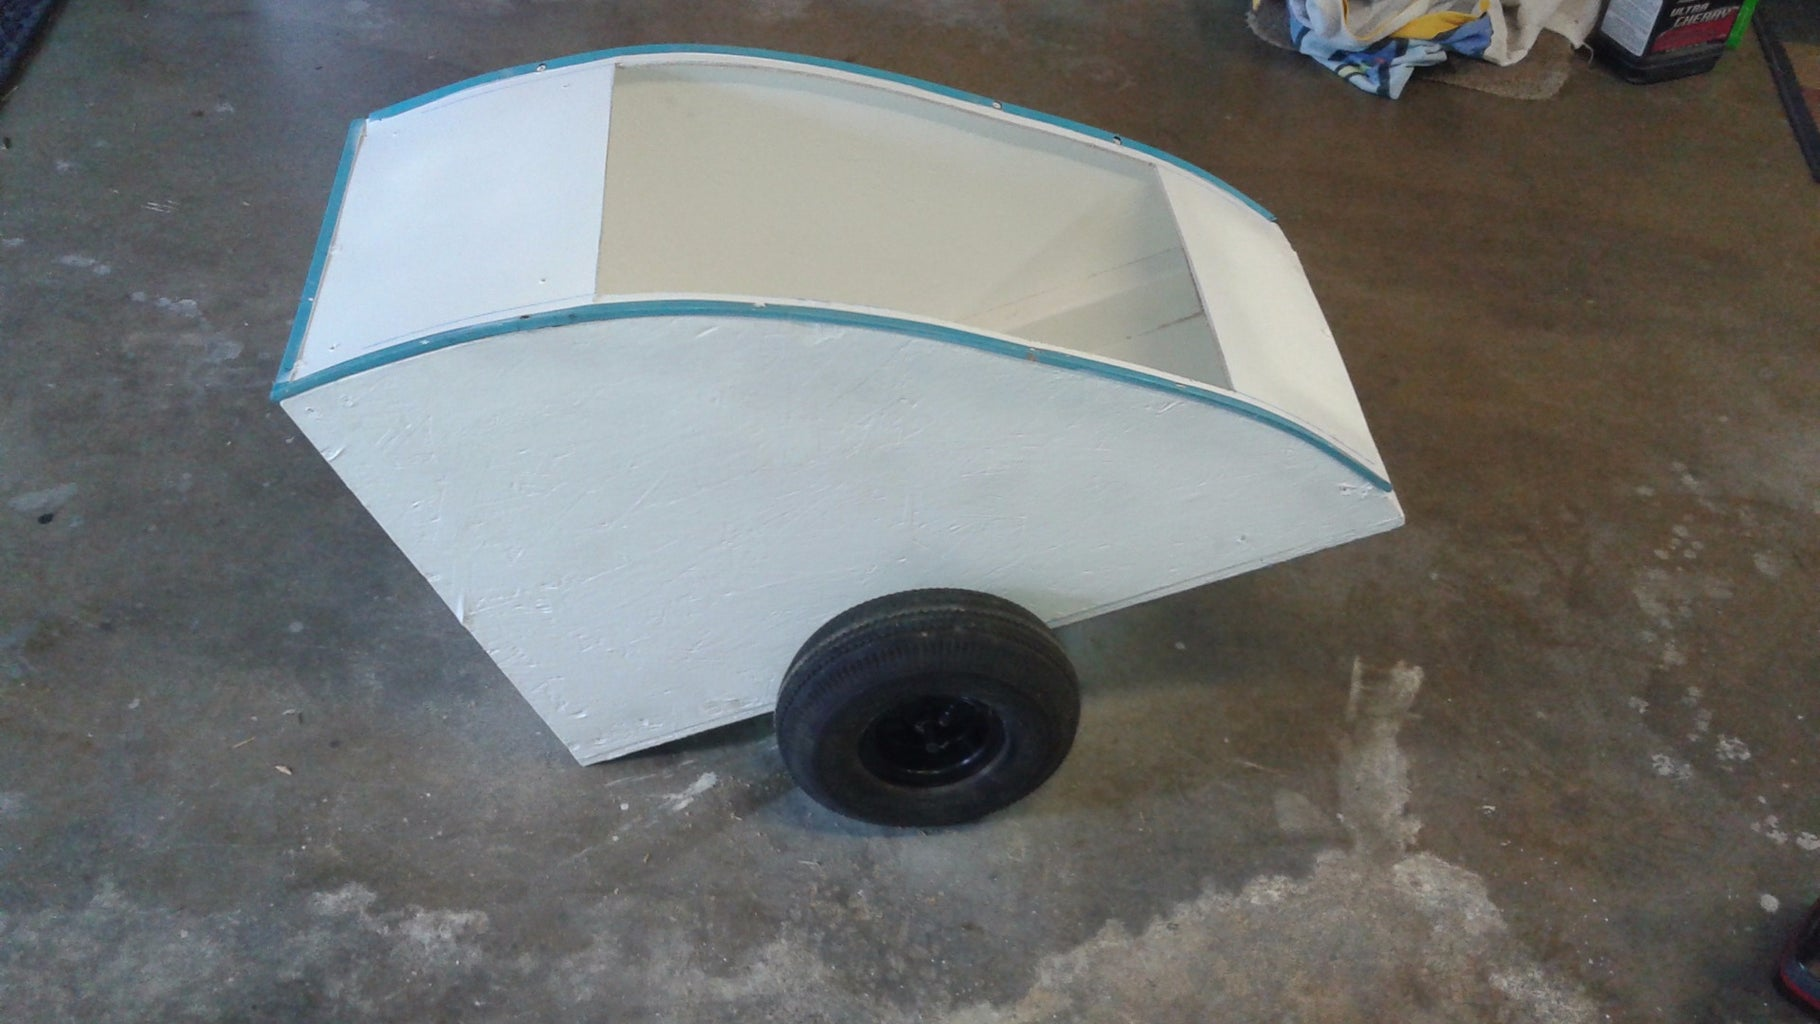 Cut Out the Door Hole and Plastic Bumper Panel.